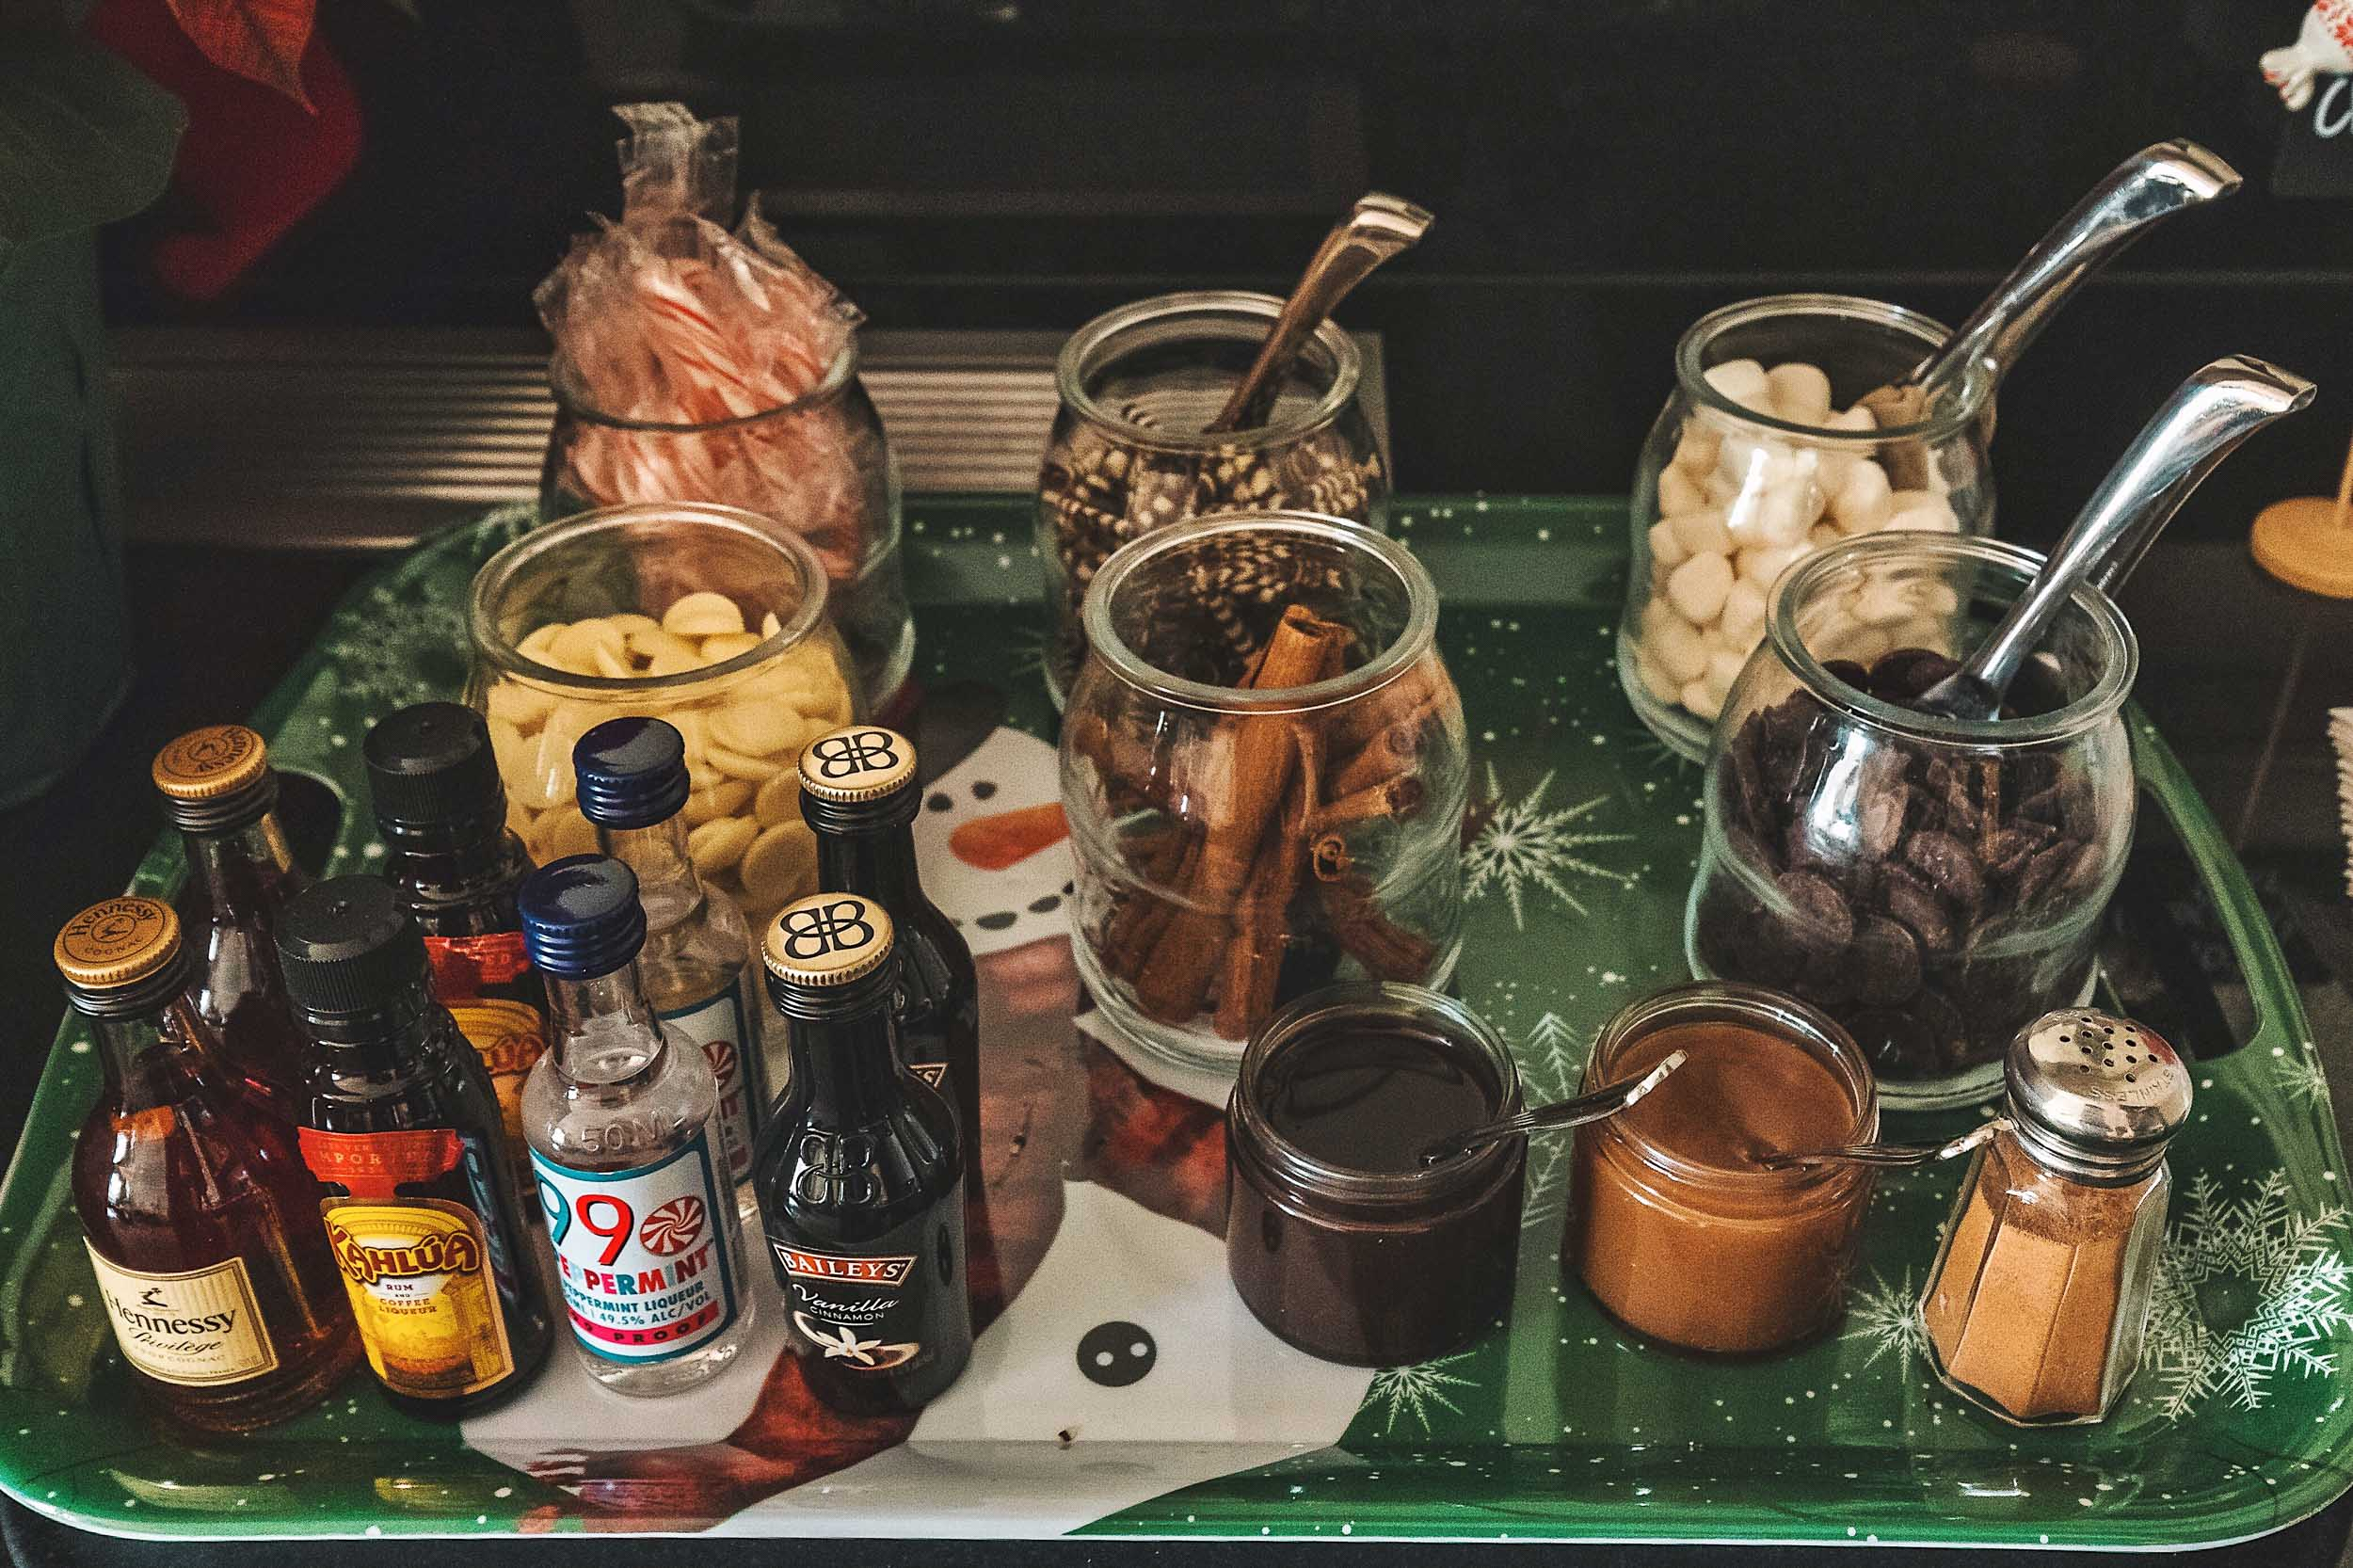 Our DIY hot chocolate bar (adult beverages included) inside the Santa Suite at The Fairmont San Francisco